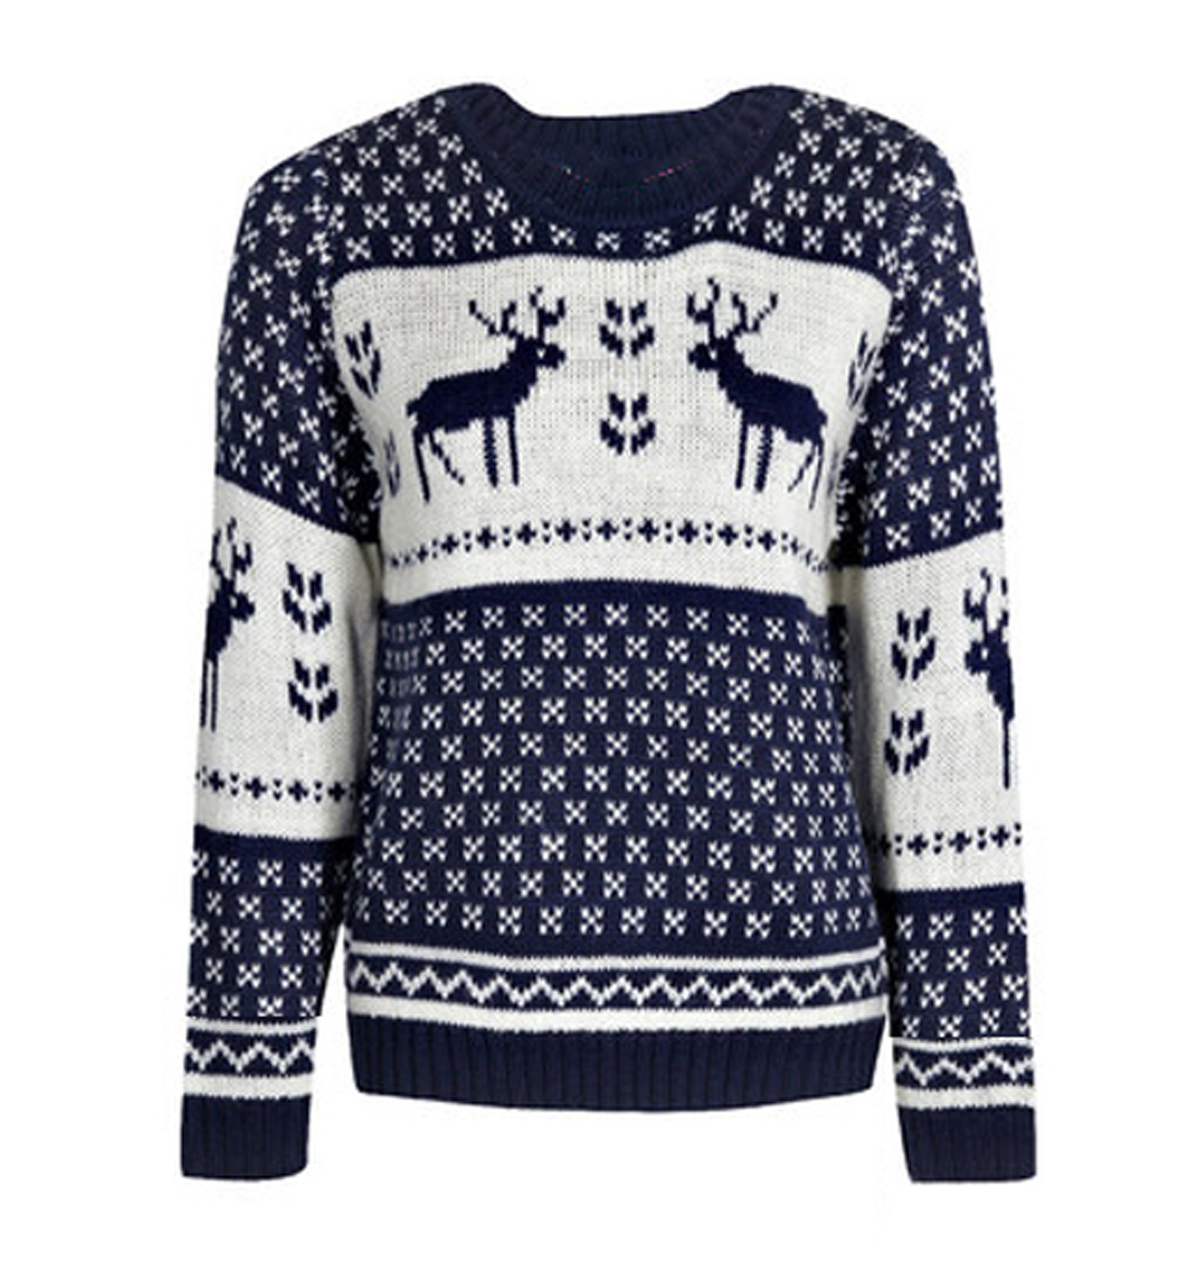 Blue And White Christmas Sweater.Christmas Novelty Reindeer Sweaters In Blue